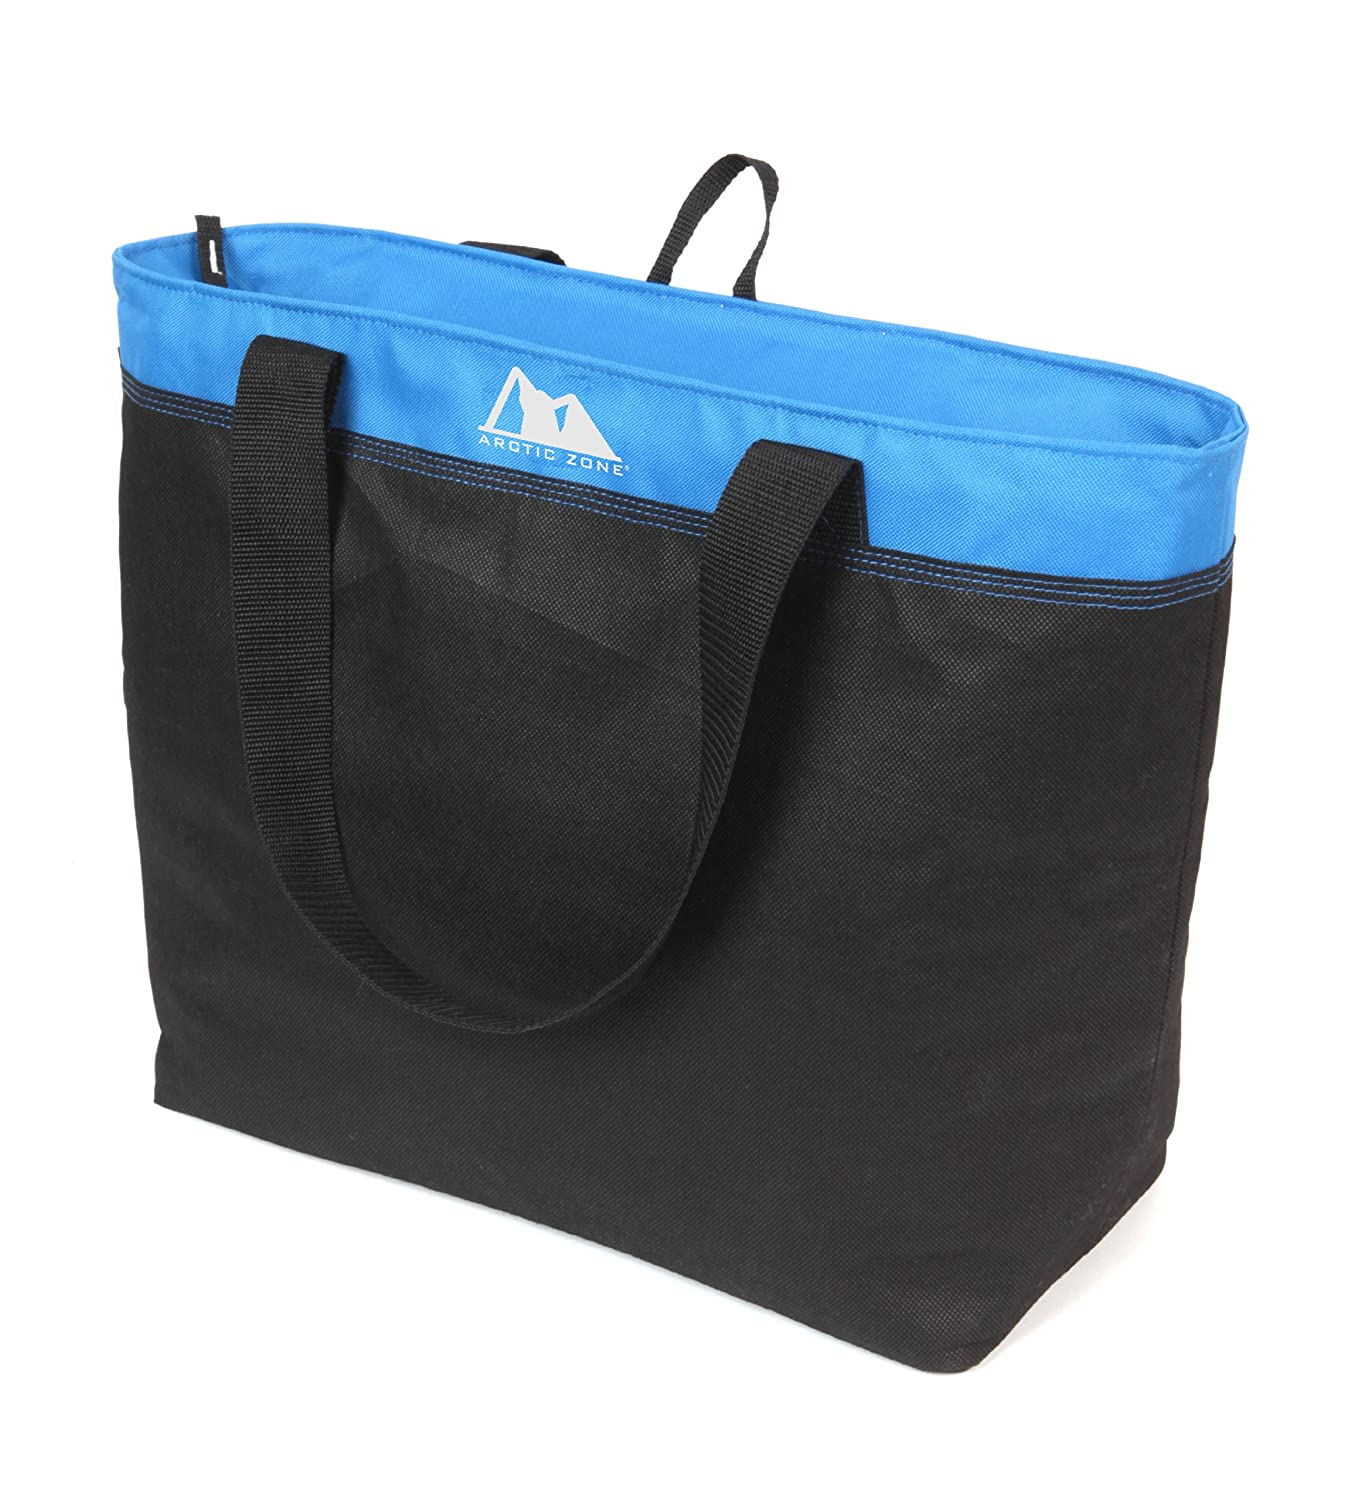 Walmart Insulated Food Bag Delivery